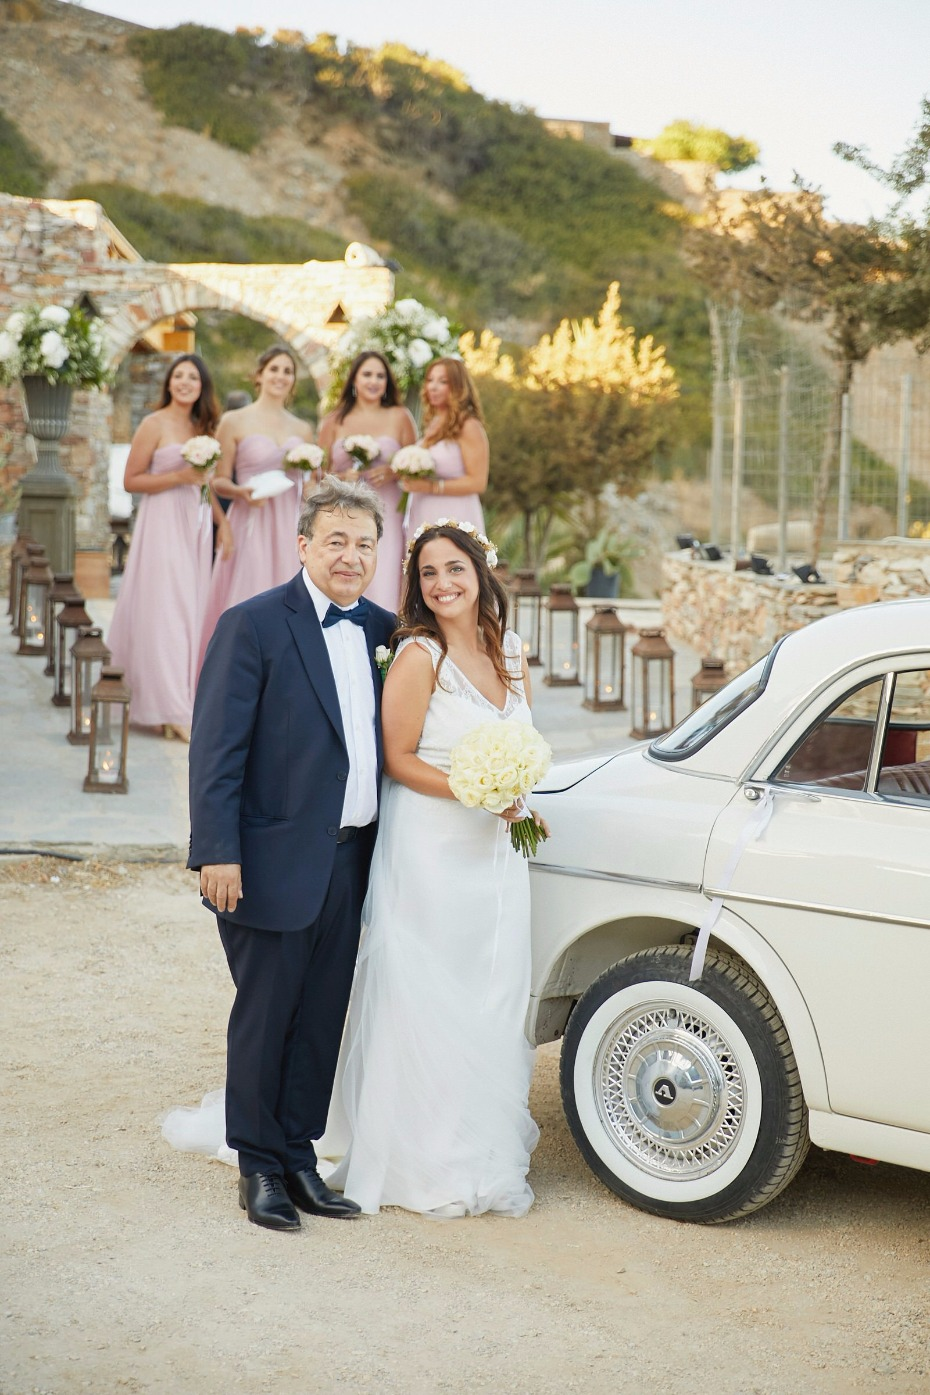 the bride and her father arriving to the ceremony in vintage style